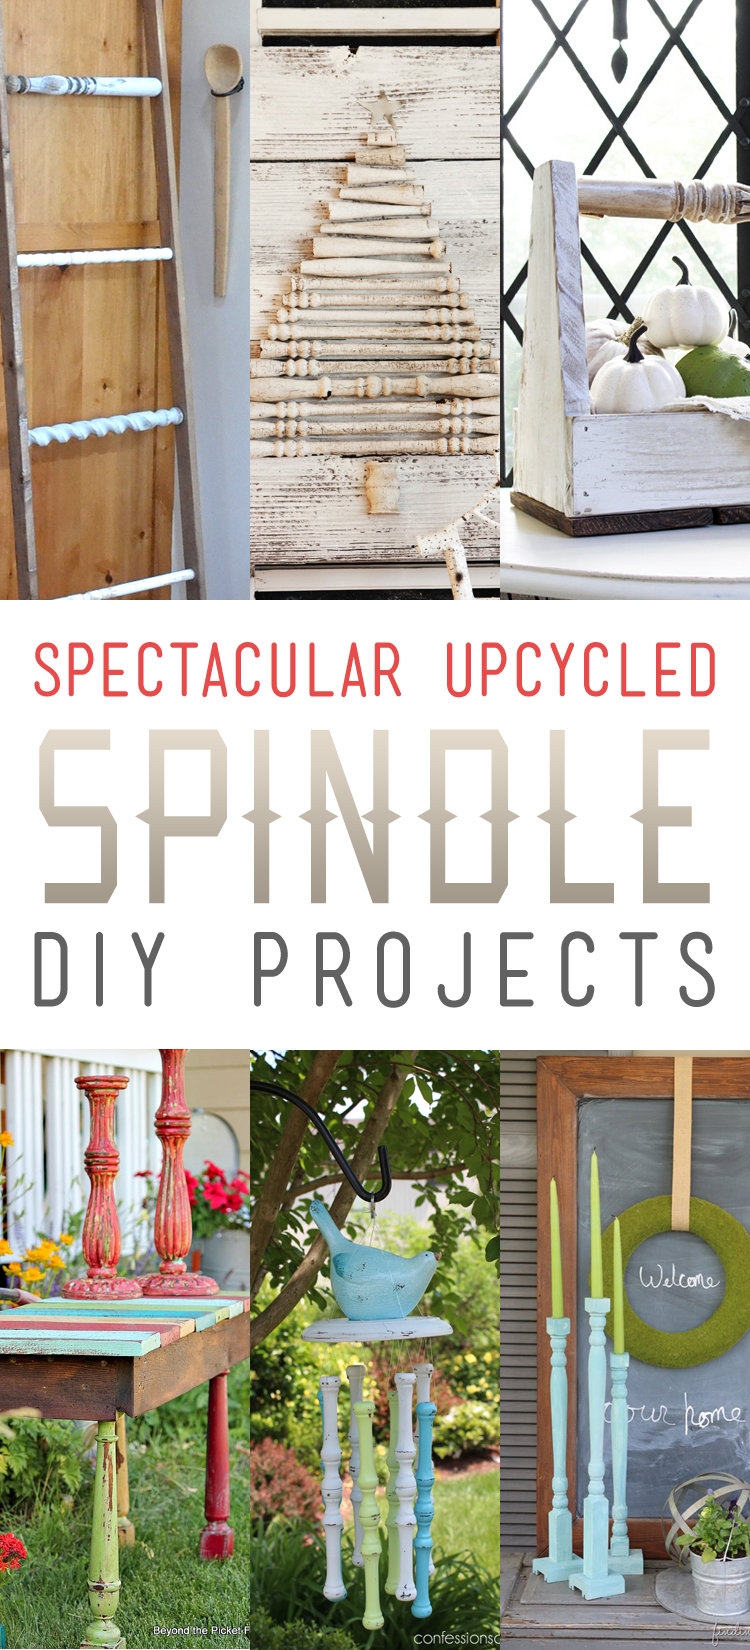 Spectacular Upcycled Spindle Diy Projects The Cottage Market